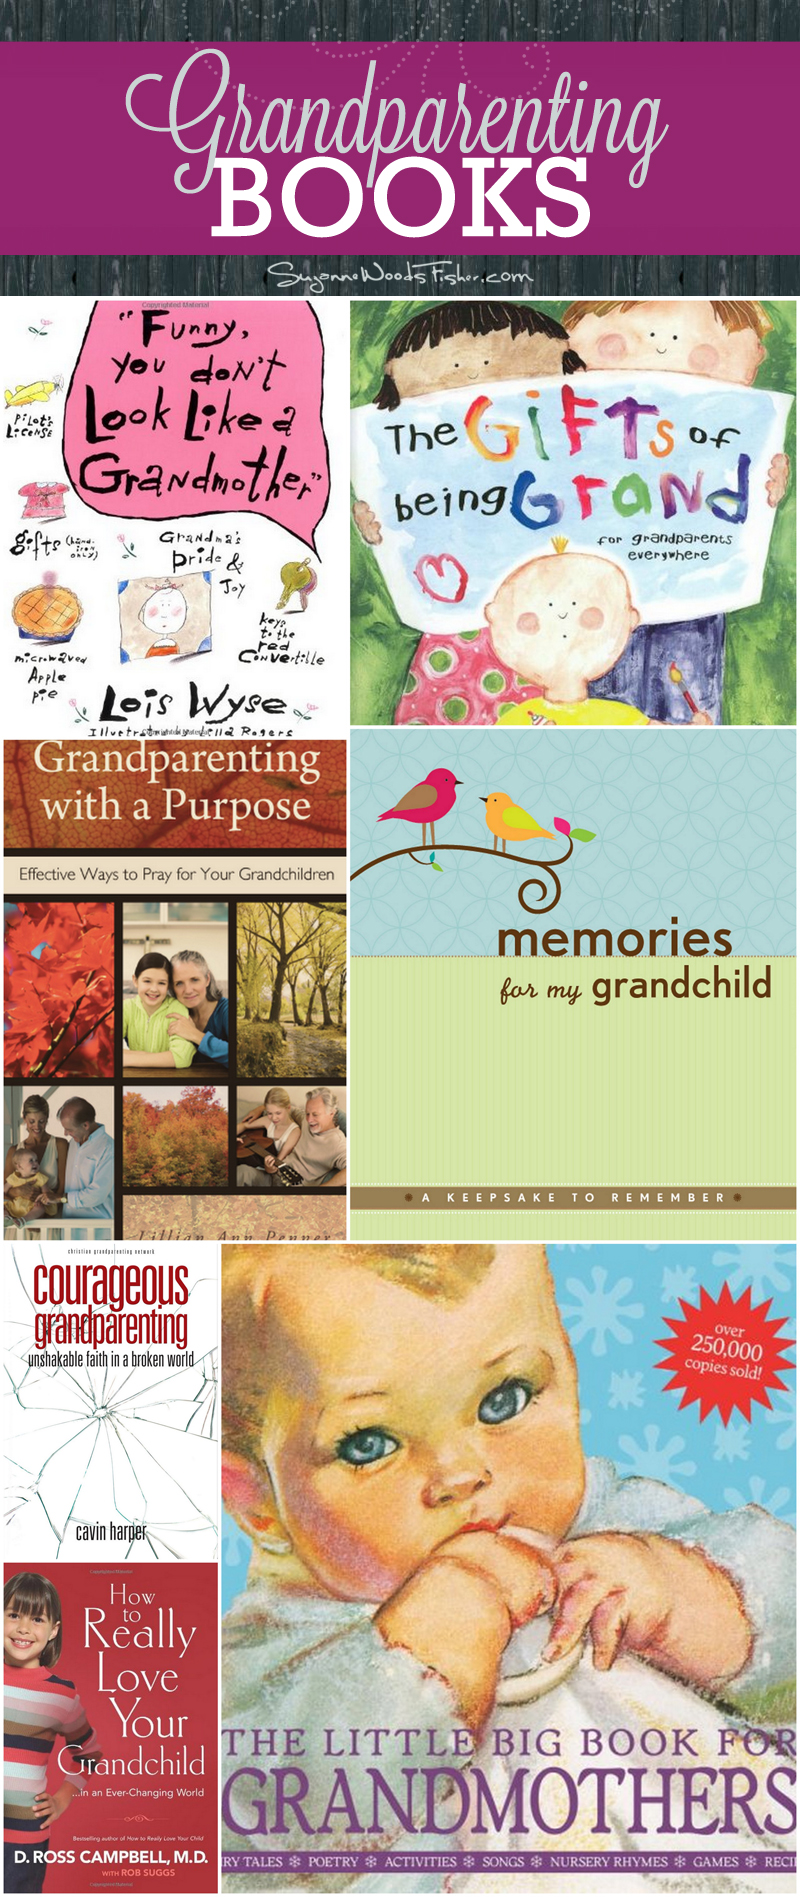 grandparenting books